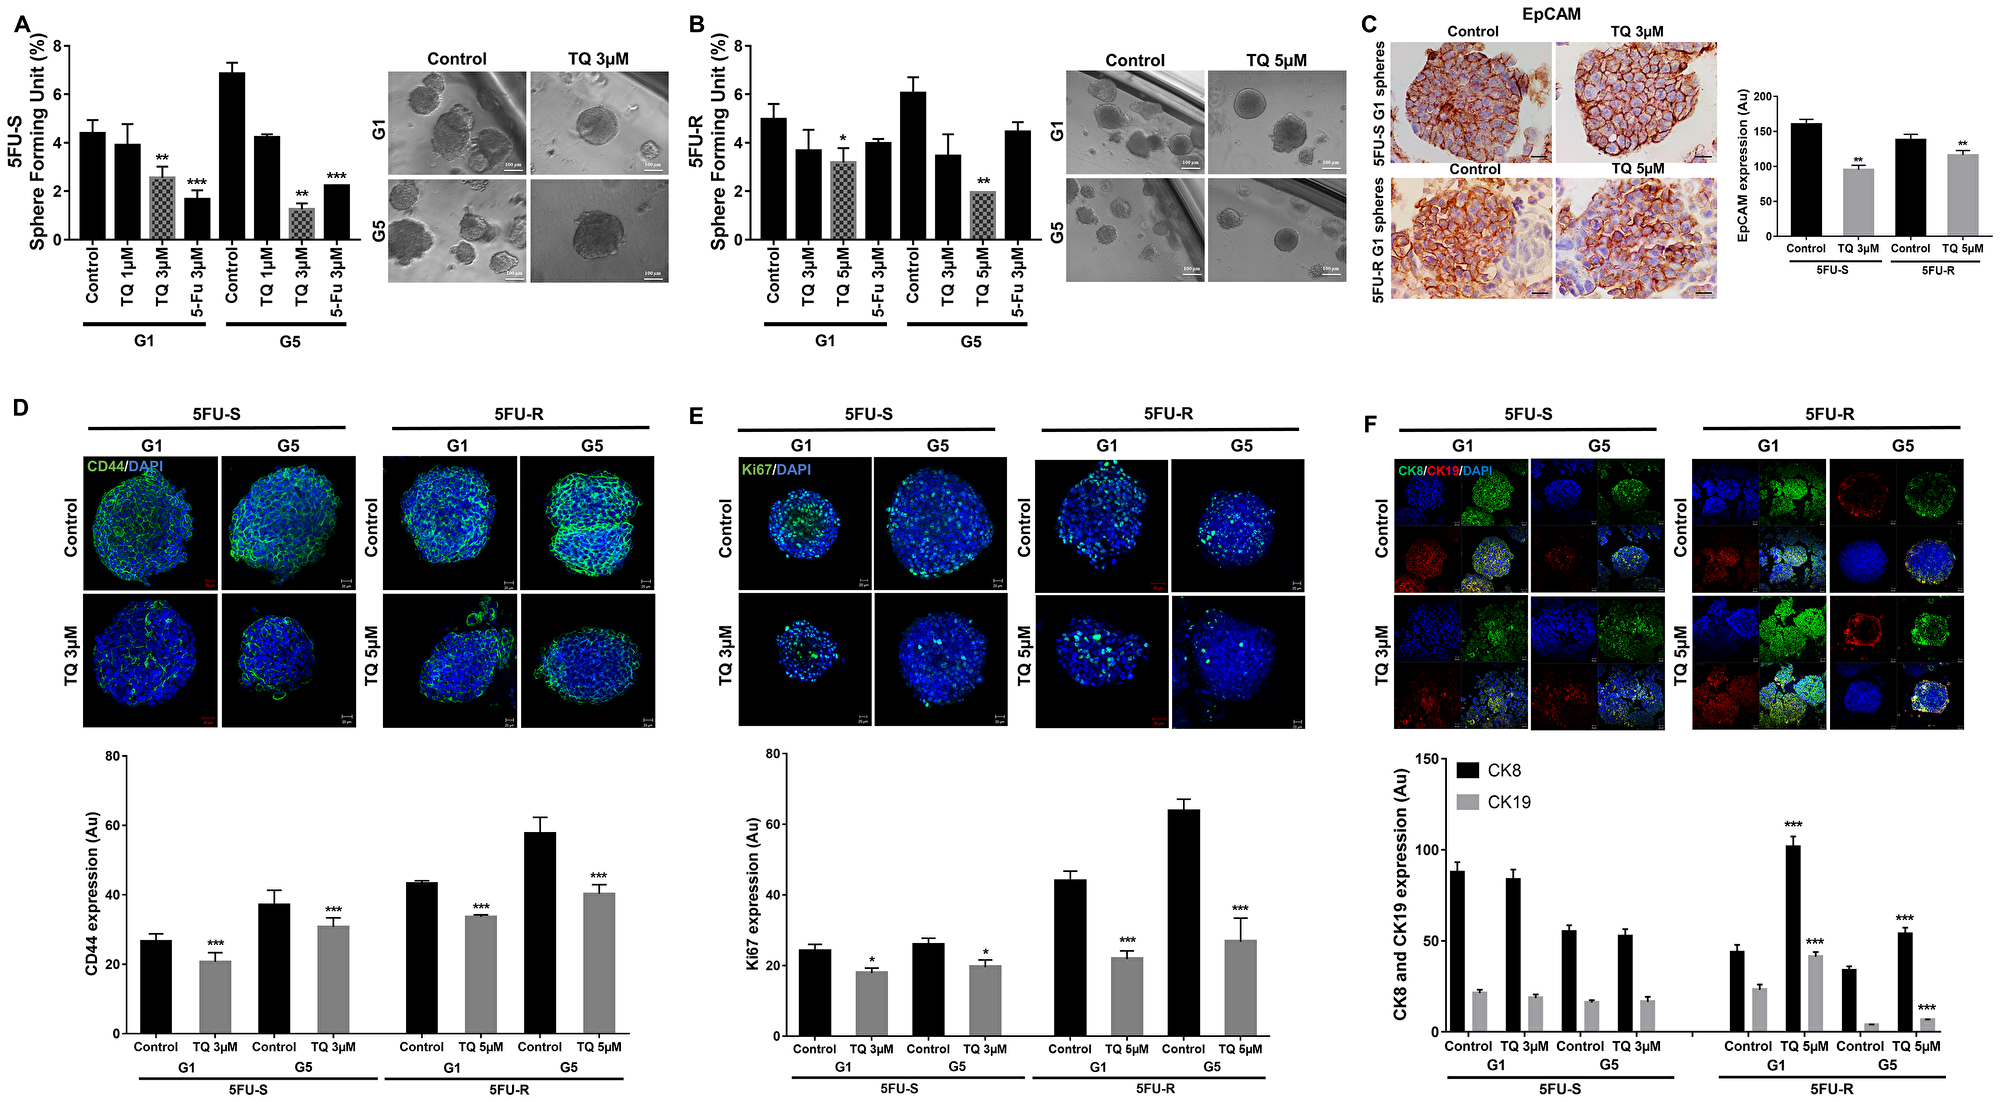 TQ reduces sphere-forming and self-renewal ability of colon cancer stem/progenitor cells.